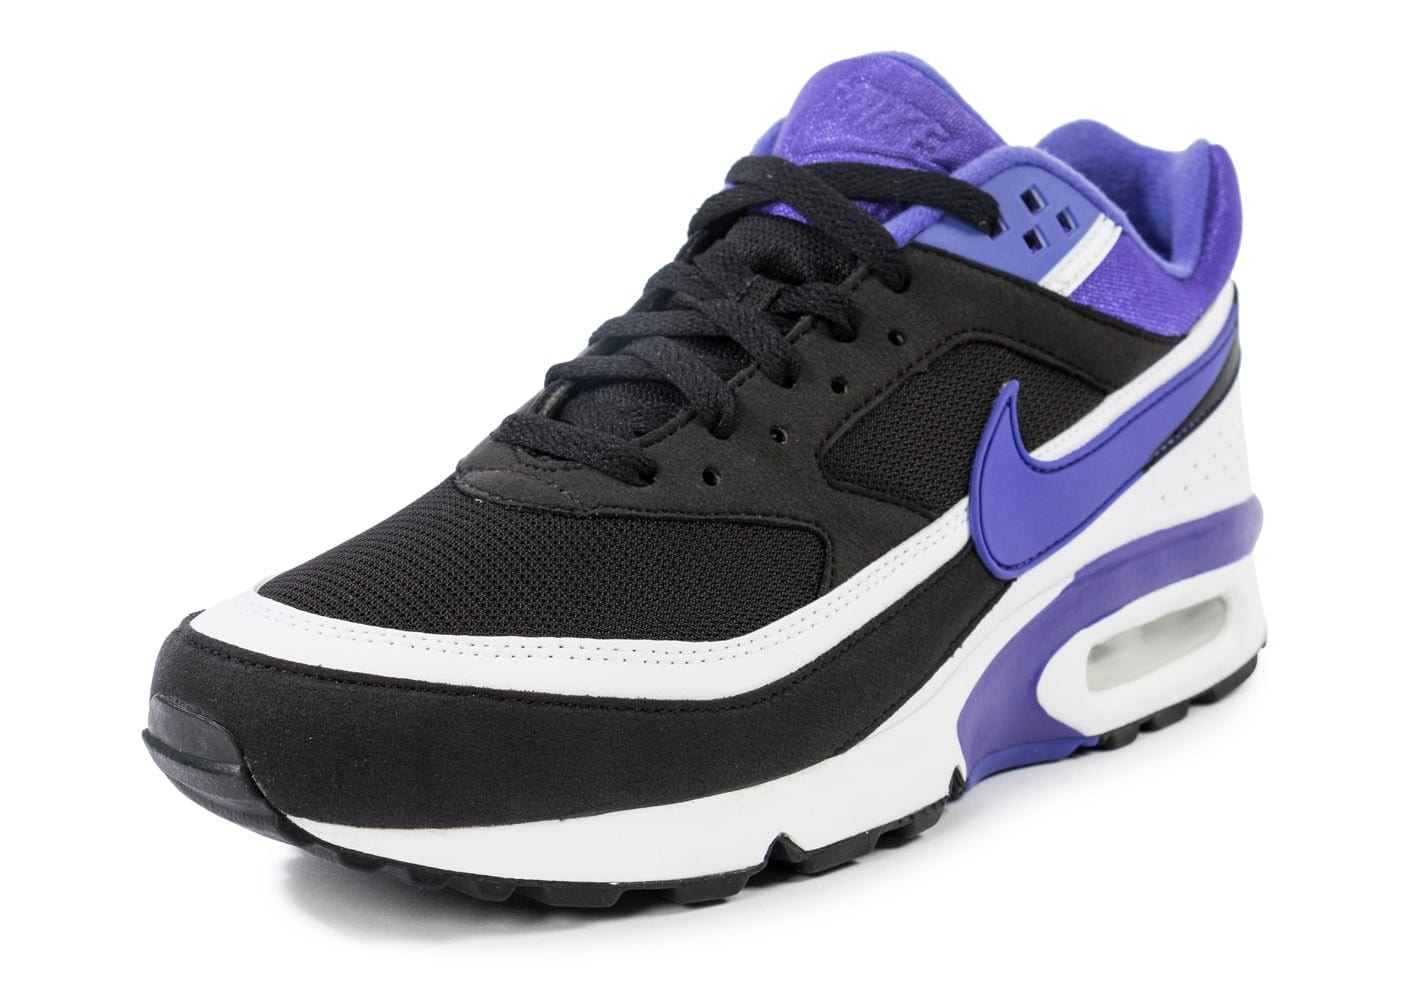 online store be276 05f1c ... Chaussures Nike Air Max BW OG Persian Violet vue avant ...